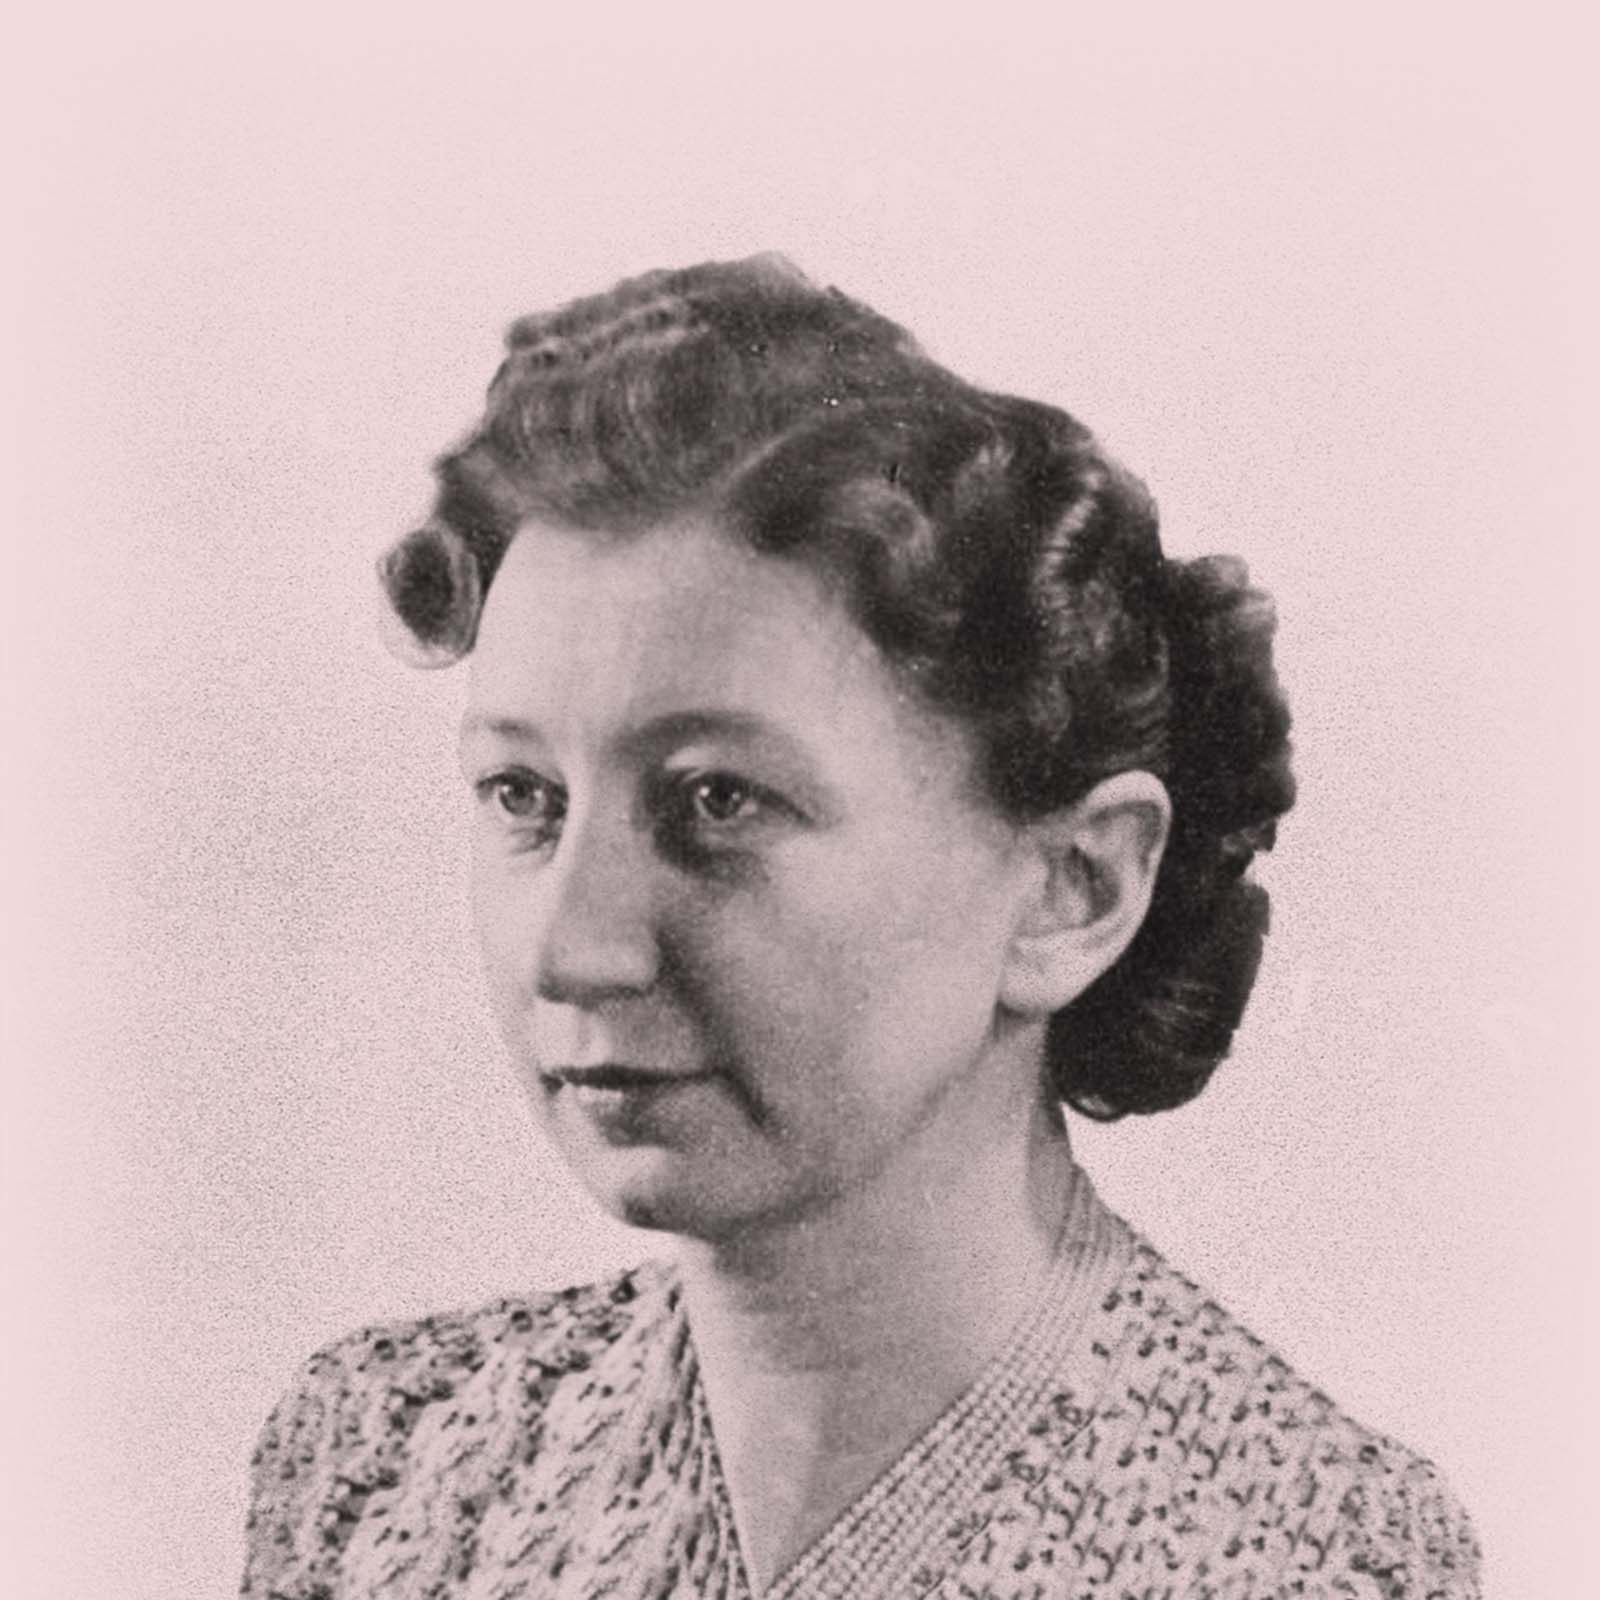 Miep Gies was one of the Dutch citizens who hid Anne Frank, her family and several family friends in an attic annex above Anne's father's place of business. This was intended to keep the Germans from finding them during World War II.